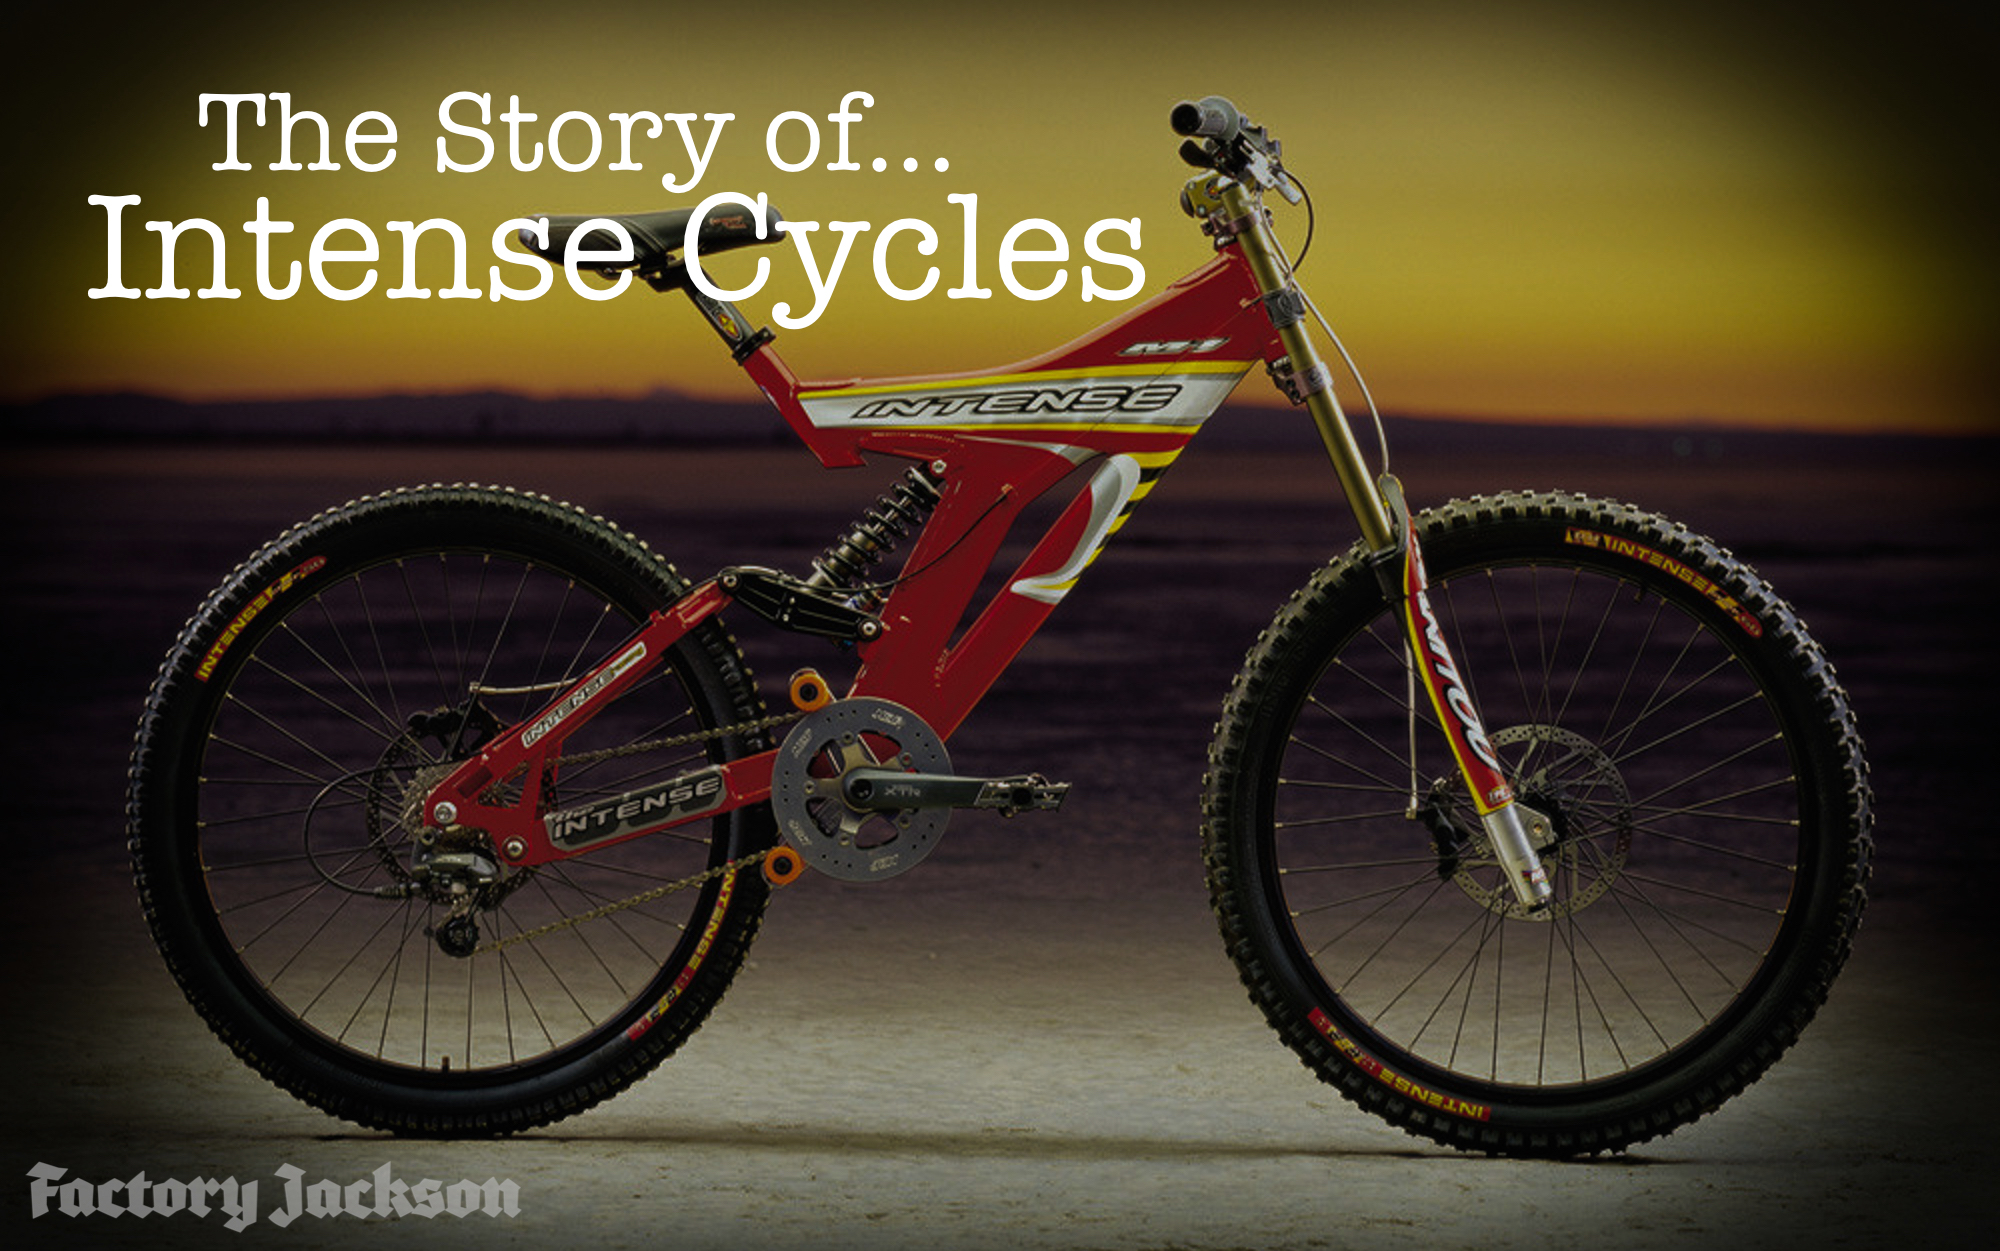 d169c214a Intense Cycles - the story of the brand - Factory Jackson Factory Jackson